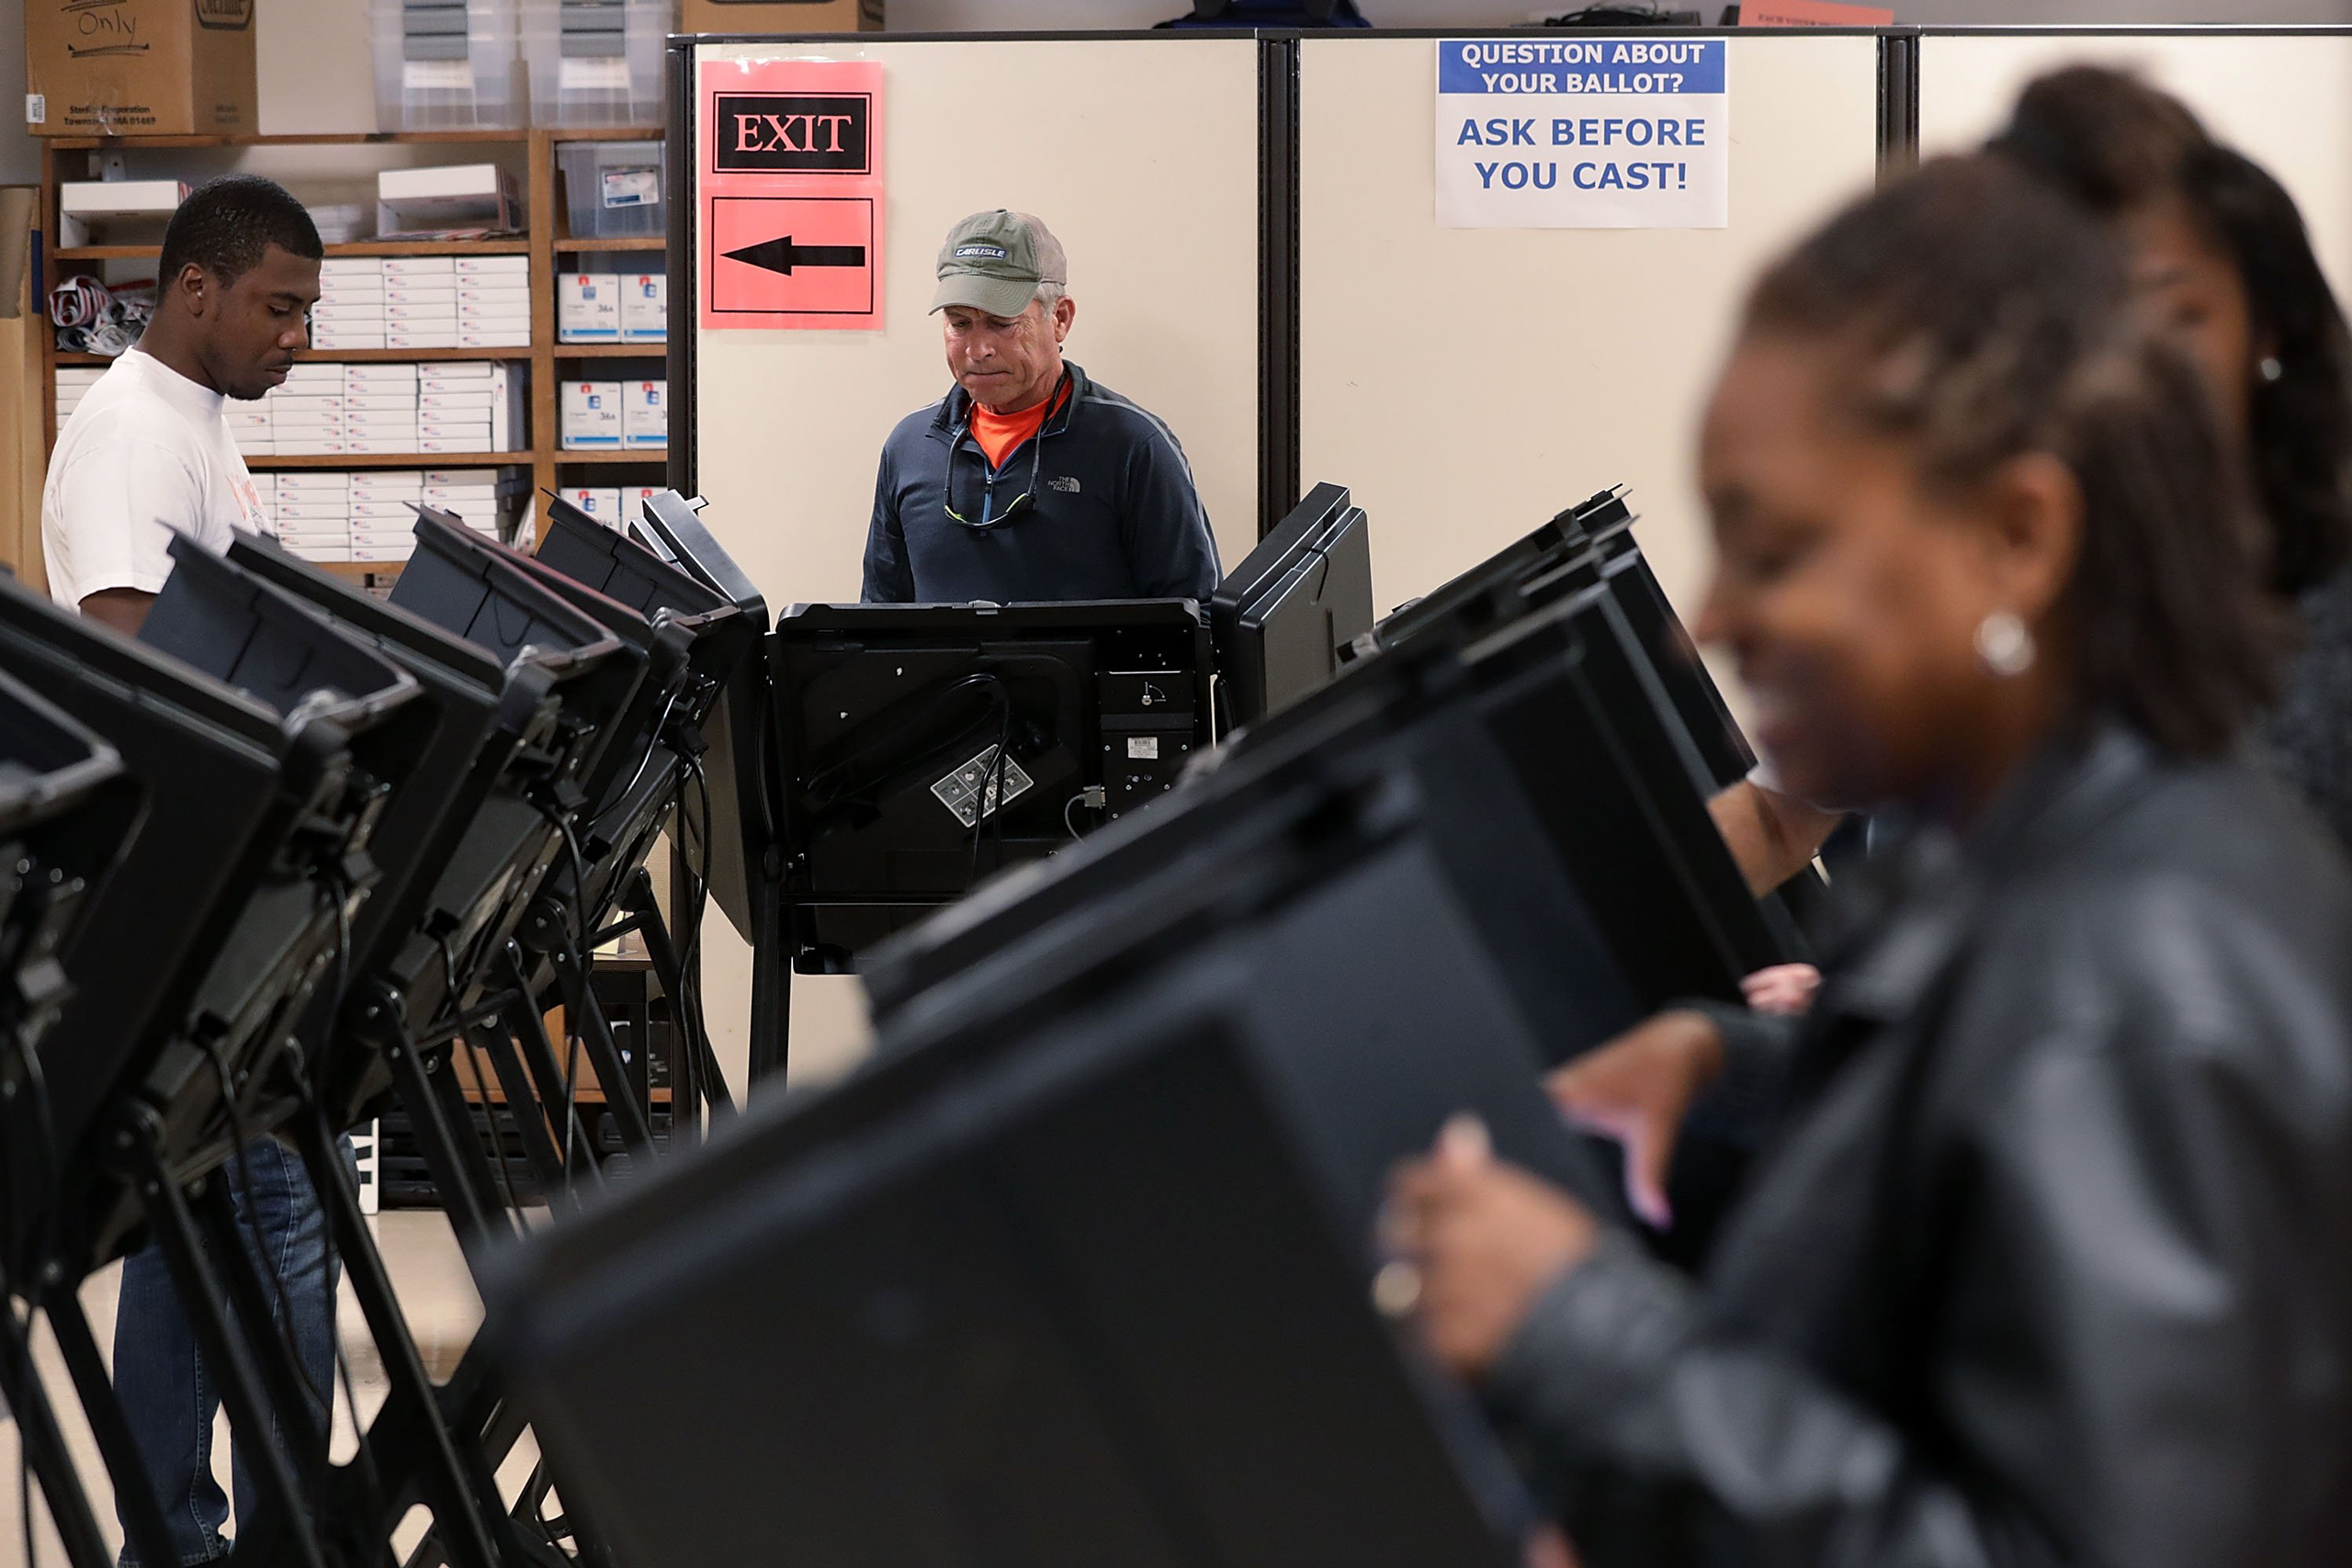 Voters cast their ballots during early voting for the 2016 general election at Forsyth County Government Center in Winston-Salem, N.C., on Oct. 28, 2016.